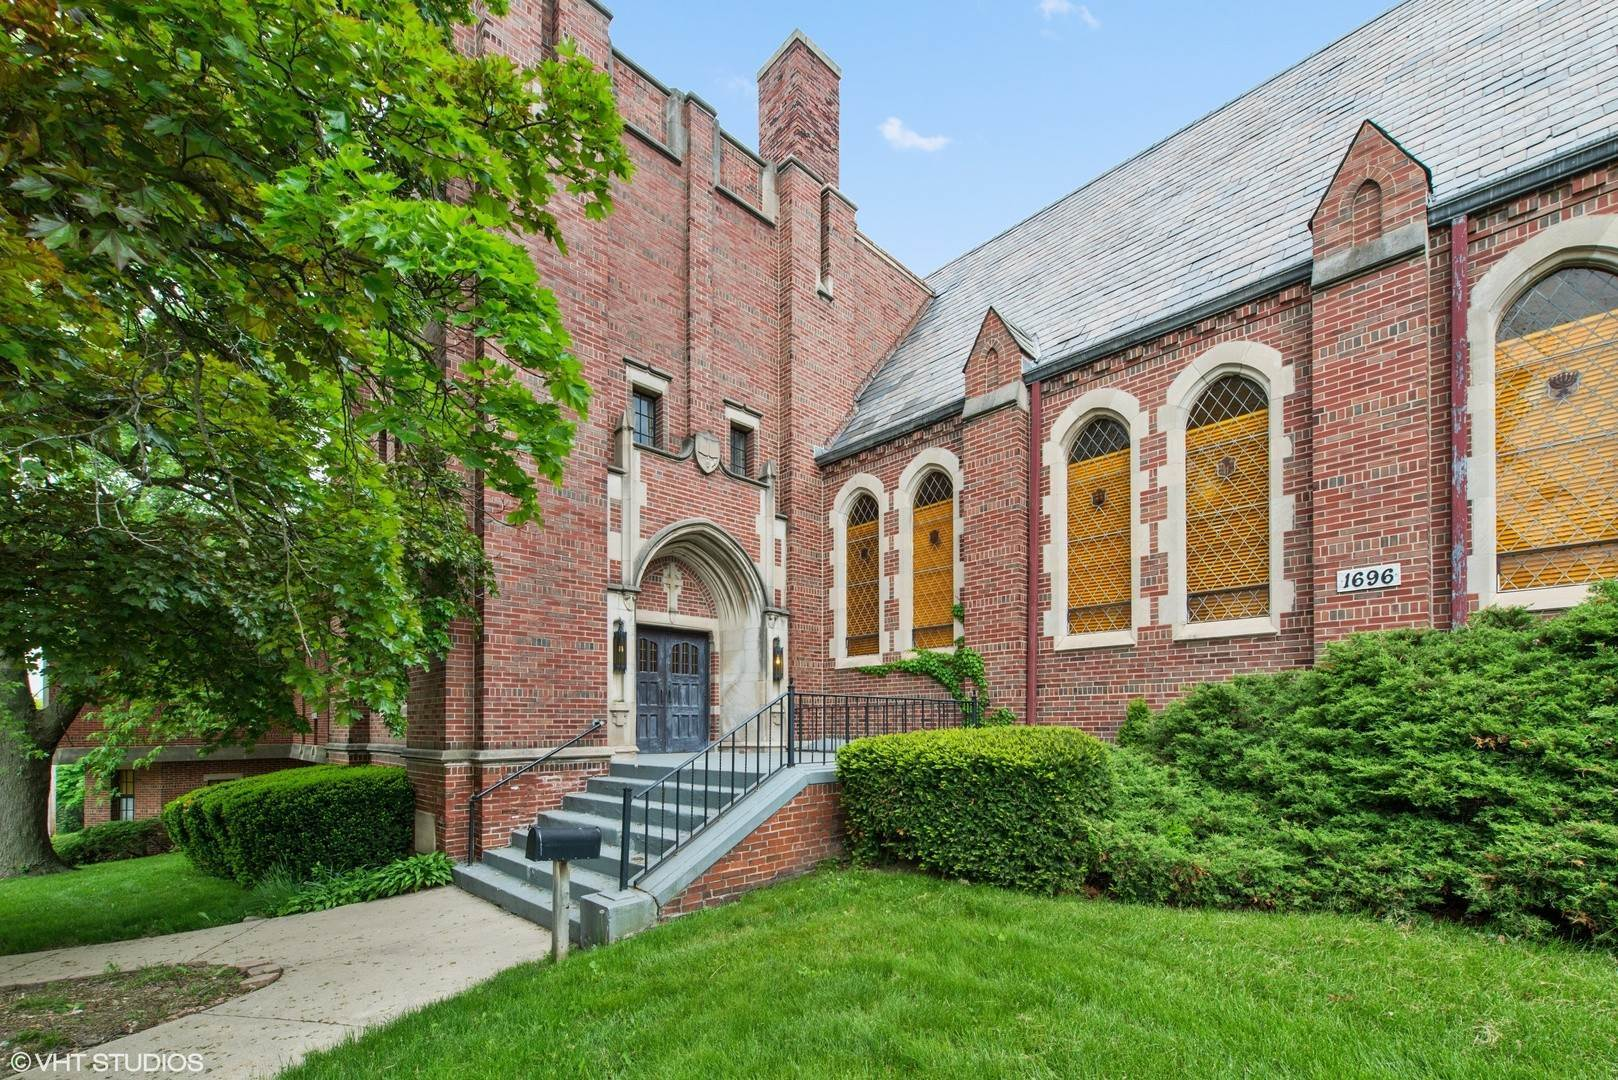 Commercial for Sale at 1696 Mcgovern Street Highland Park, Illinois 60035 United States